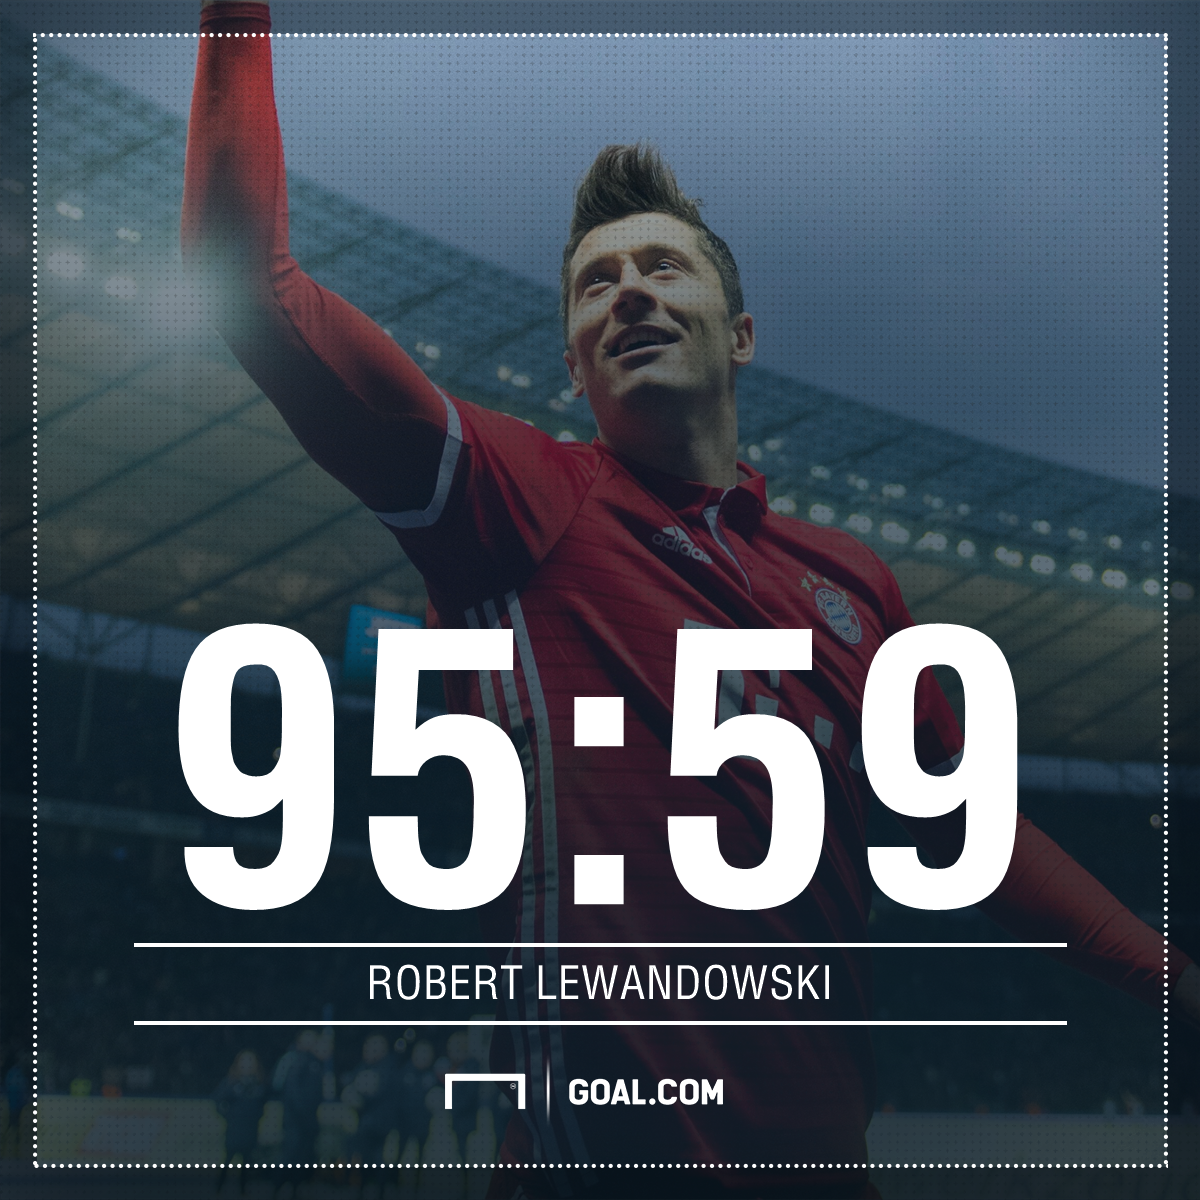 Robert Lewandowski GFX